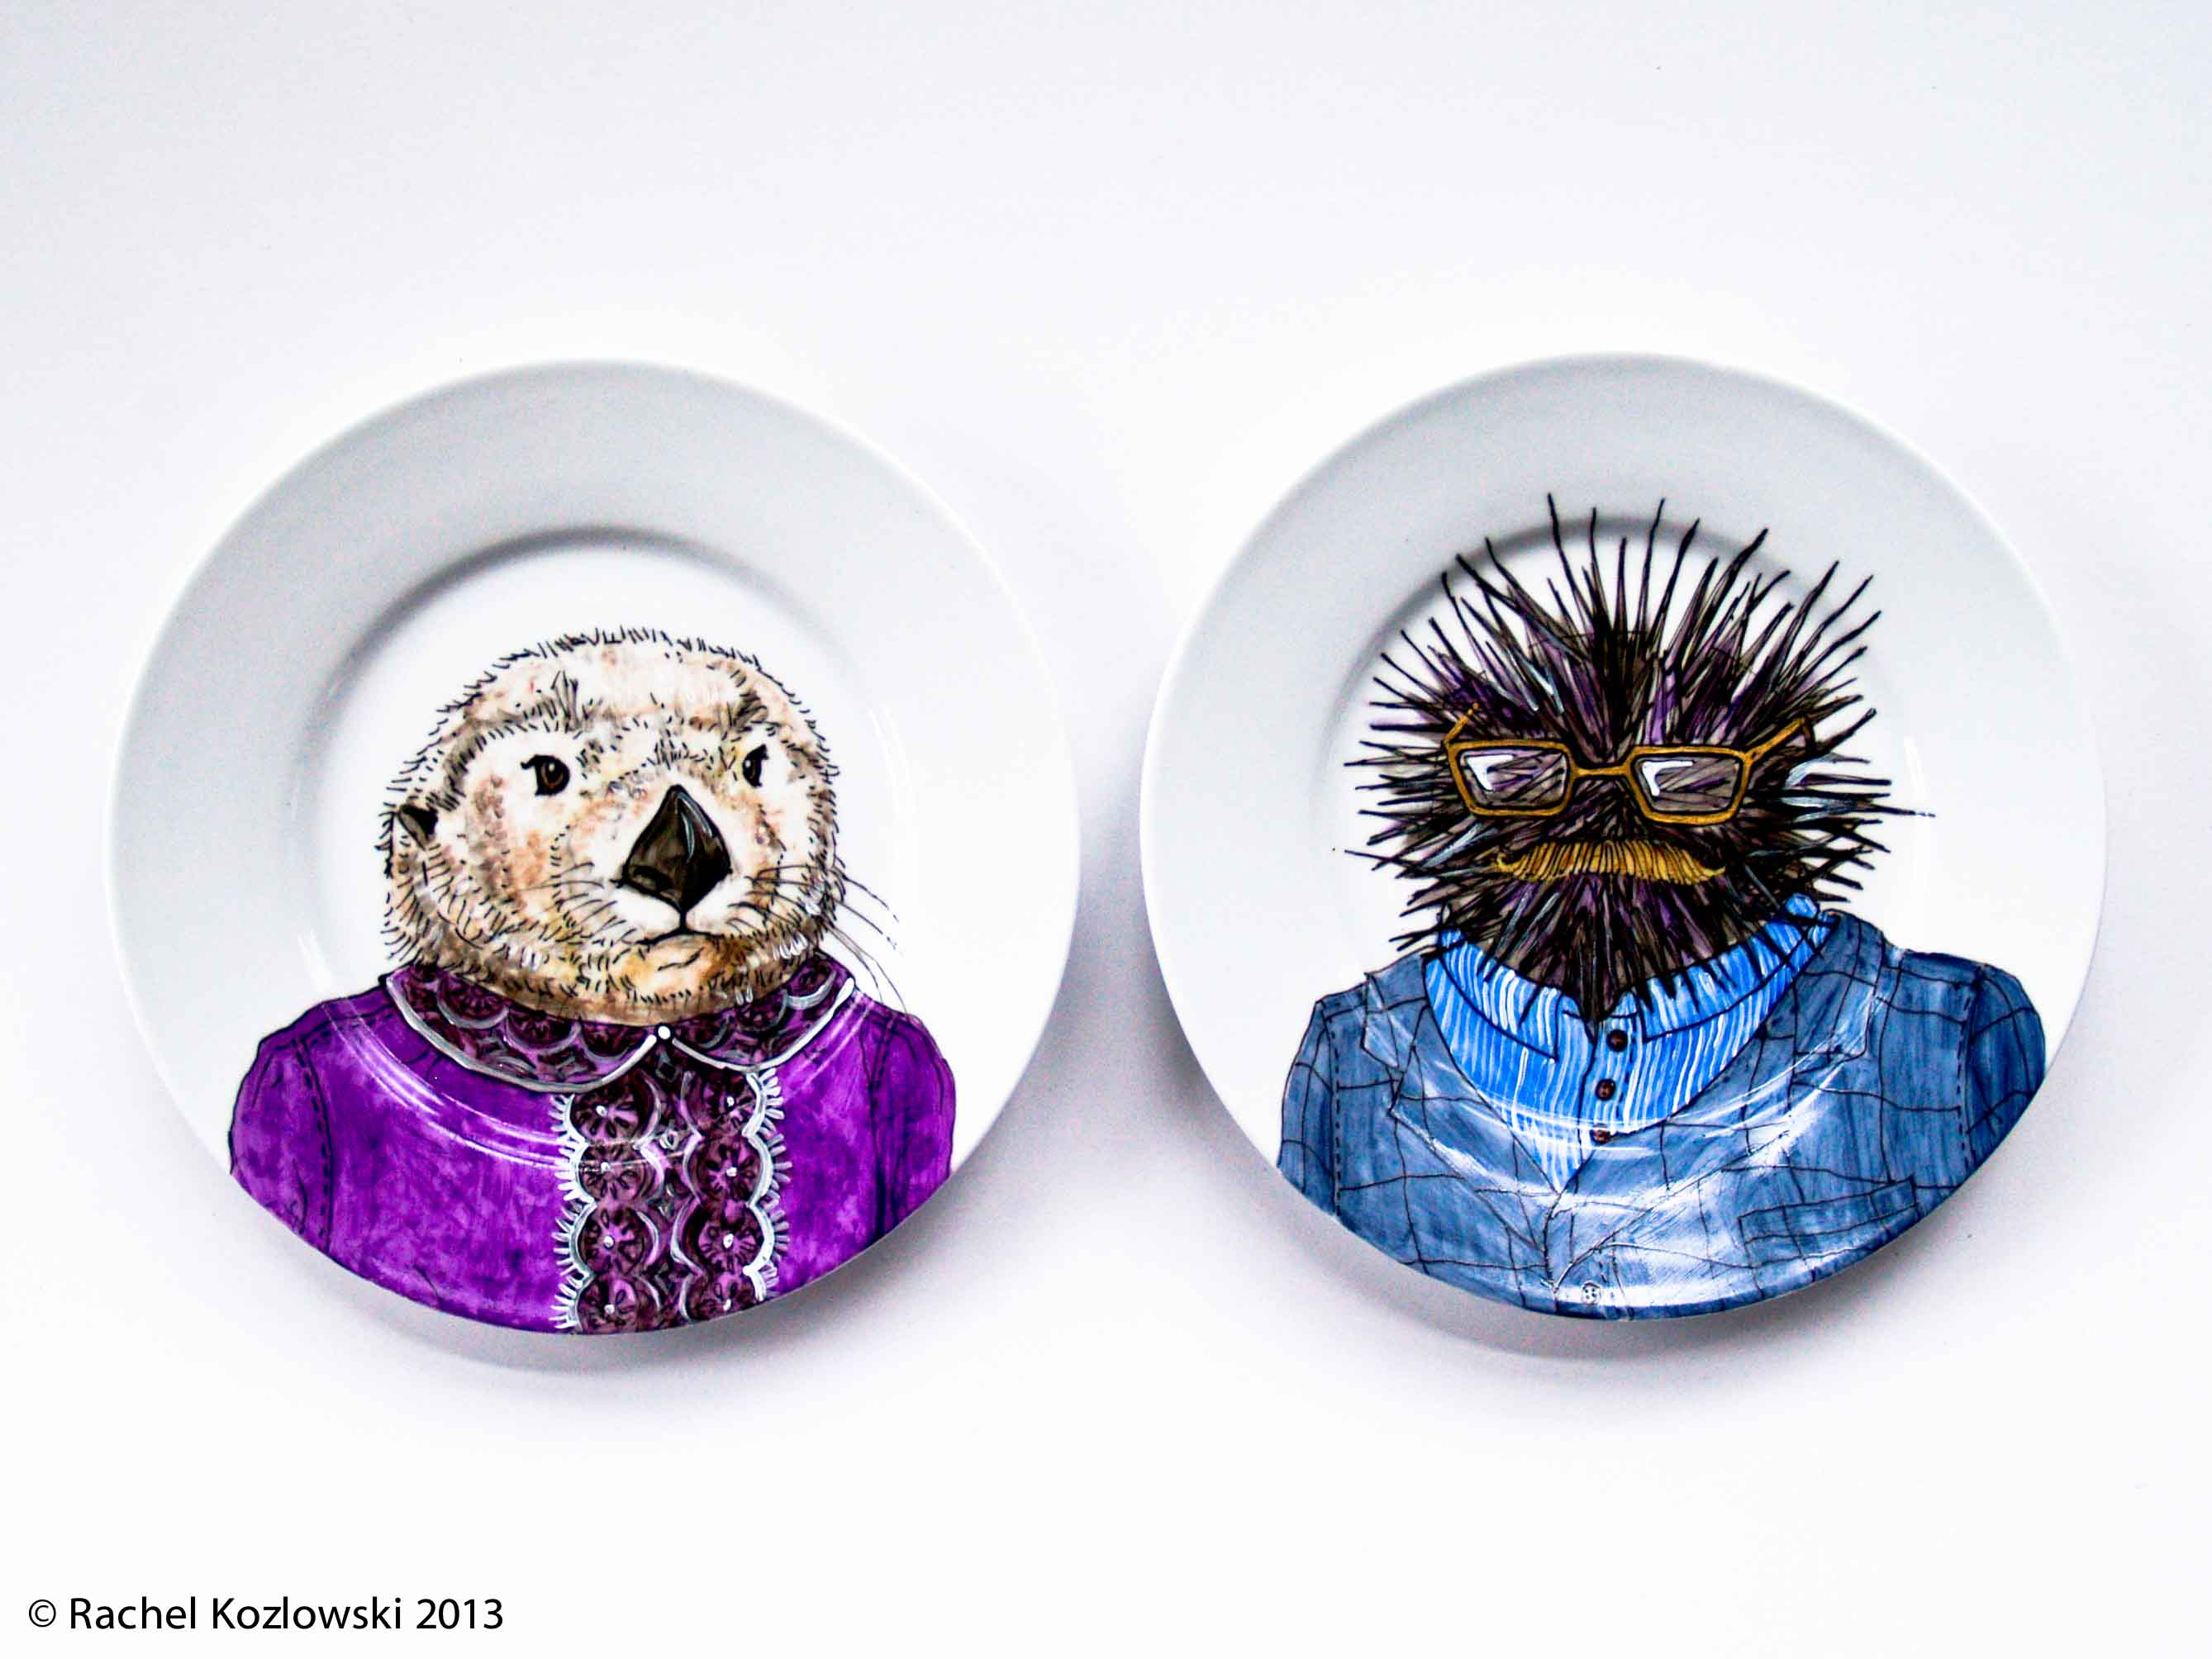 Opposites Attract: Otter and Urchin